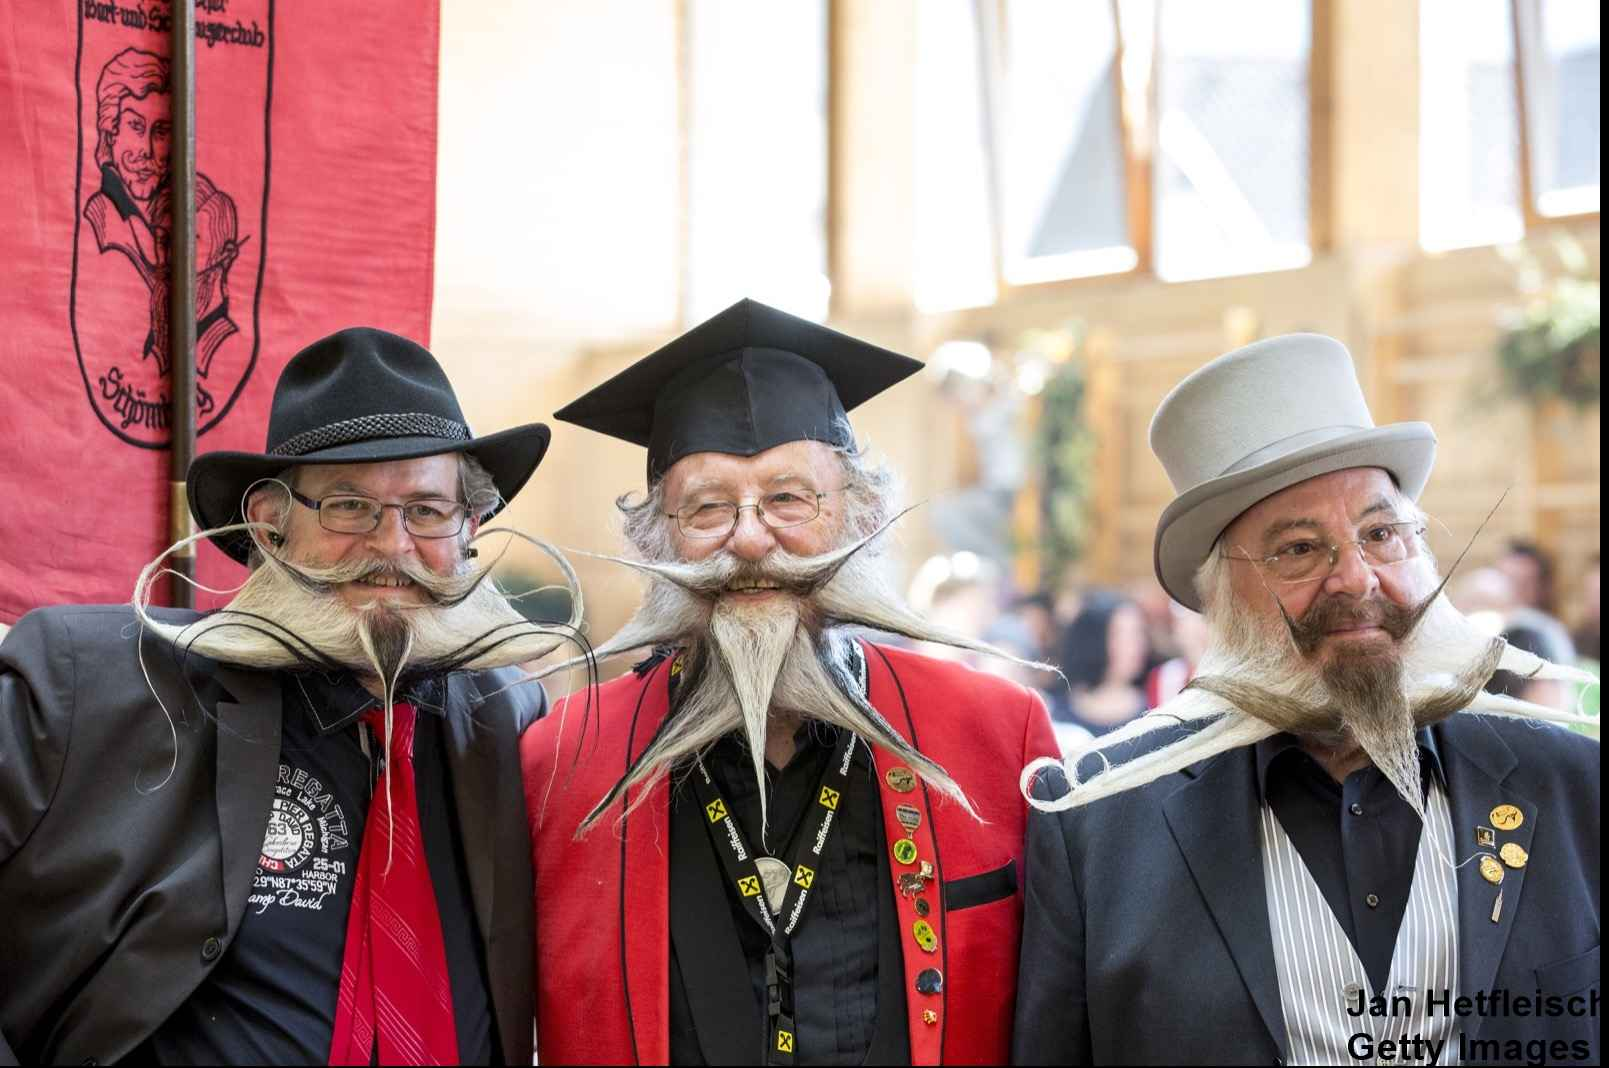 LEOGANG, AUSTRIA - OCTOBER 3: Contestants of the World Beard And Mustache Championships pose for a picture during the Championships 2015 on October 3, 2015 in Leogang, Austria. Over 300 contestants in teams from across the globe have come to compete in sixteen different categories in three groups: mustache, partial beard and full beard. The event takes place every few years at different locations worldwide. (Photo by Jan Hetfleisch/Getty Images)